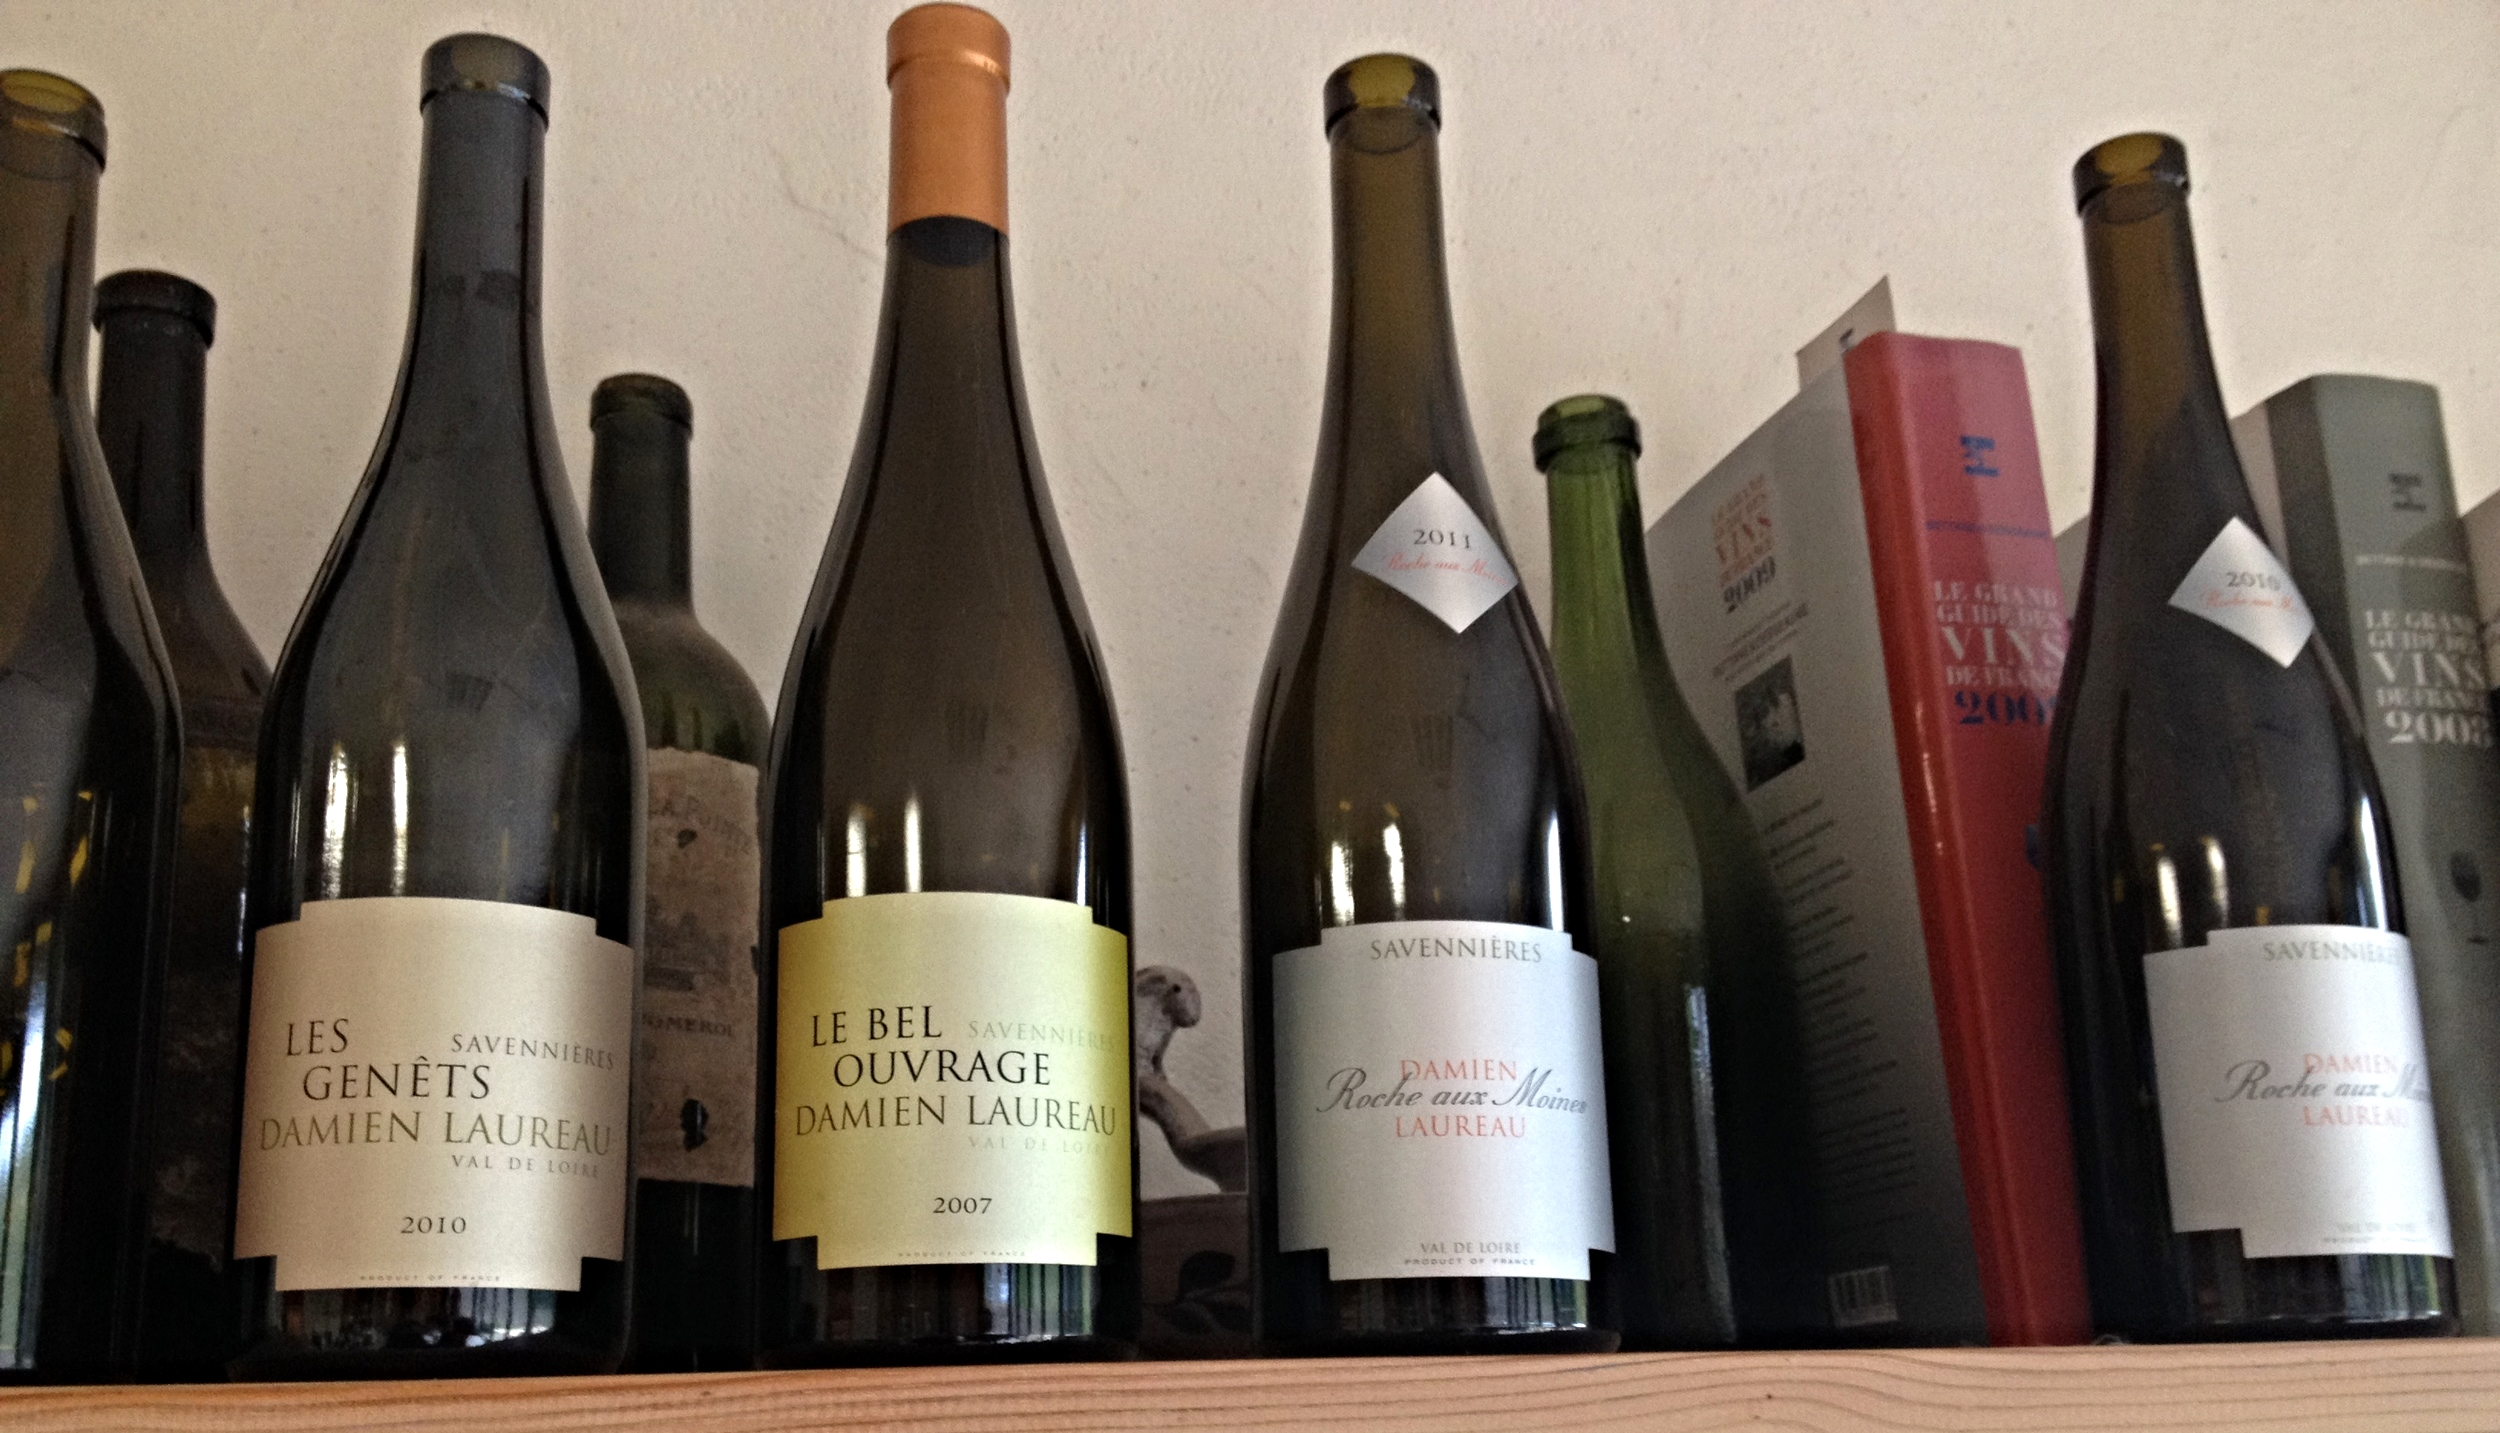 Some of Damien's wines: Les Genets, Le Bel Ouvrage, and the Roche aux Moines